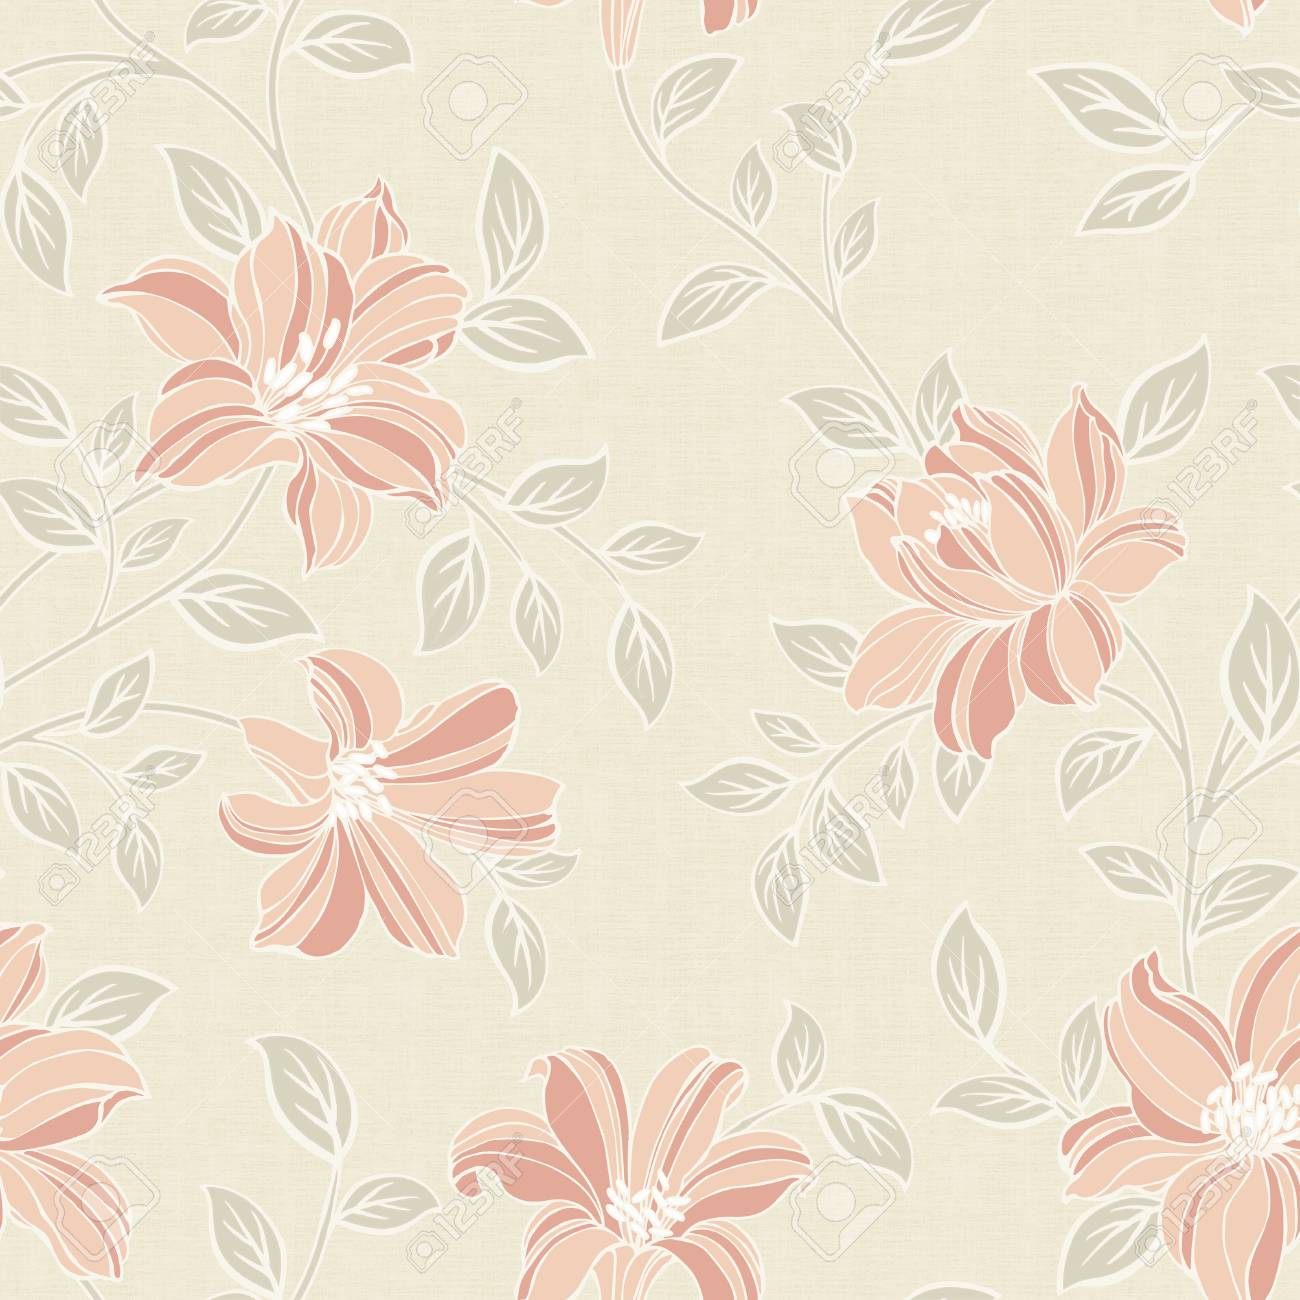 Classical style pattern seamless background - For easy making seamless pattern use it for filling any contours Stock Photo - 23095756